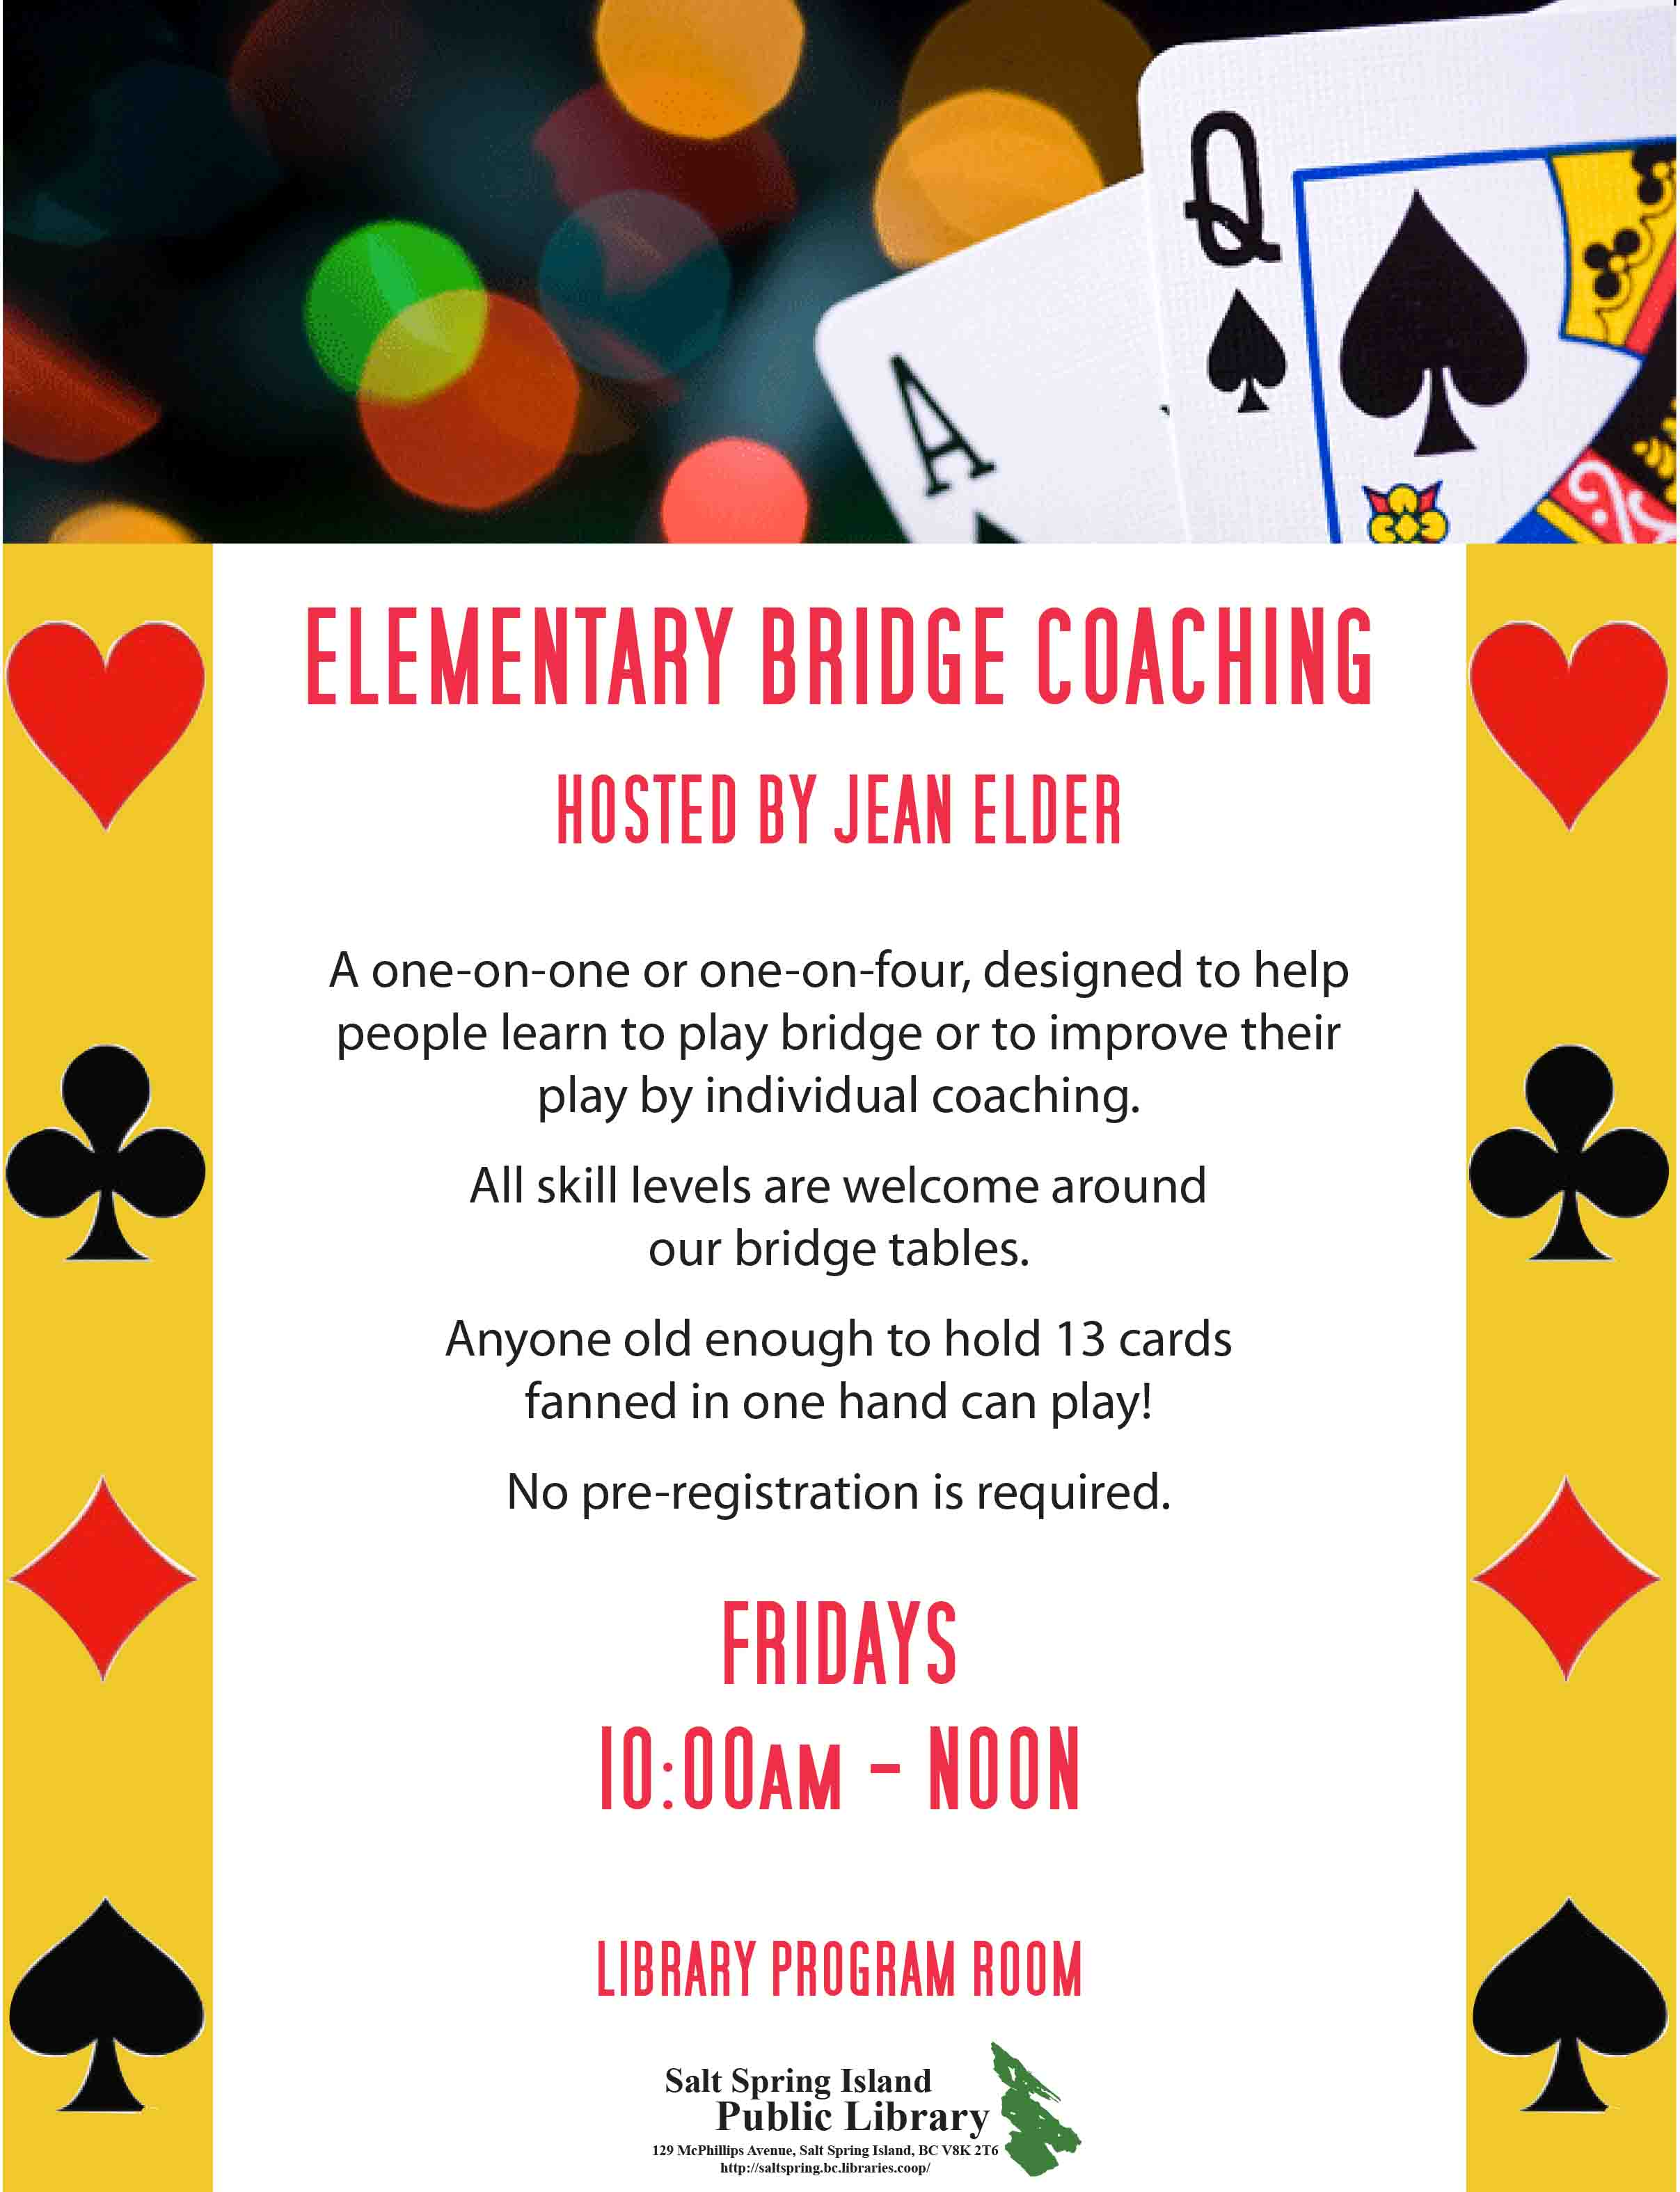 Elementary Bridge Coaching @ Library Program Room